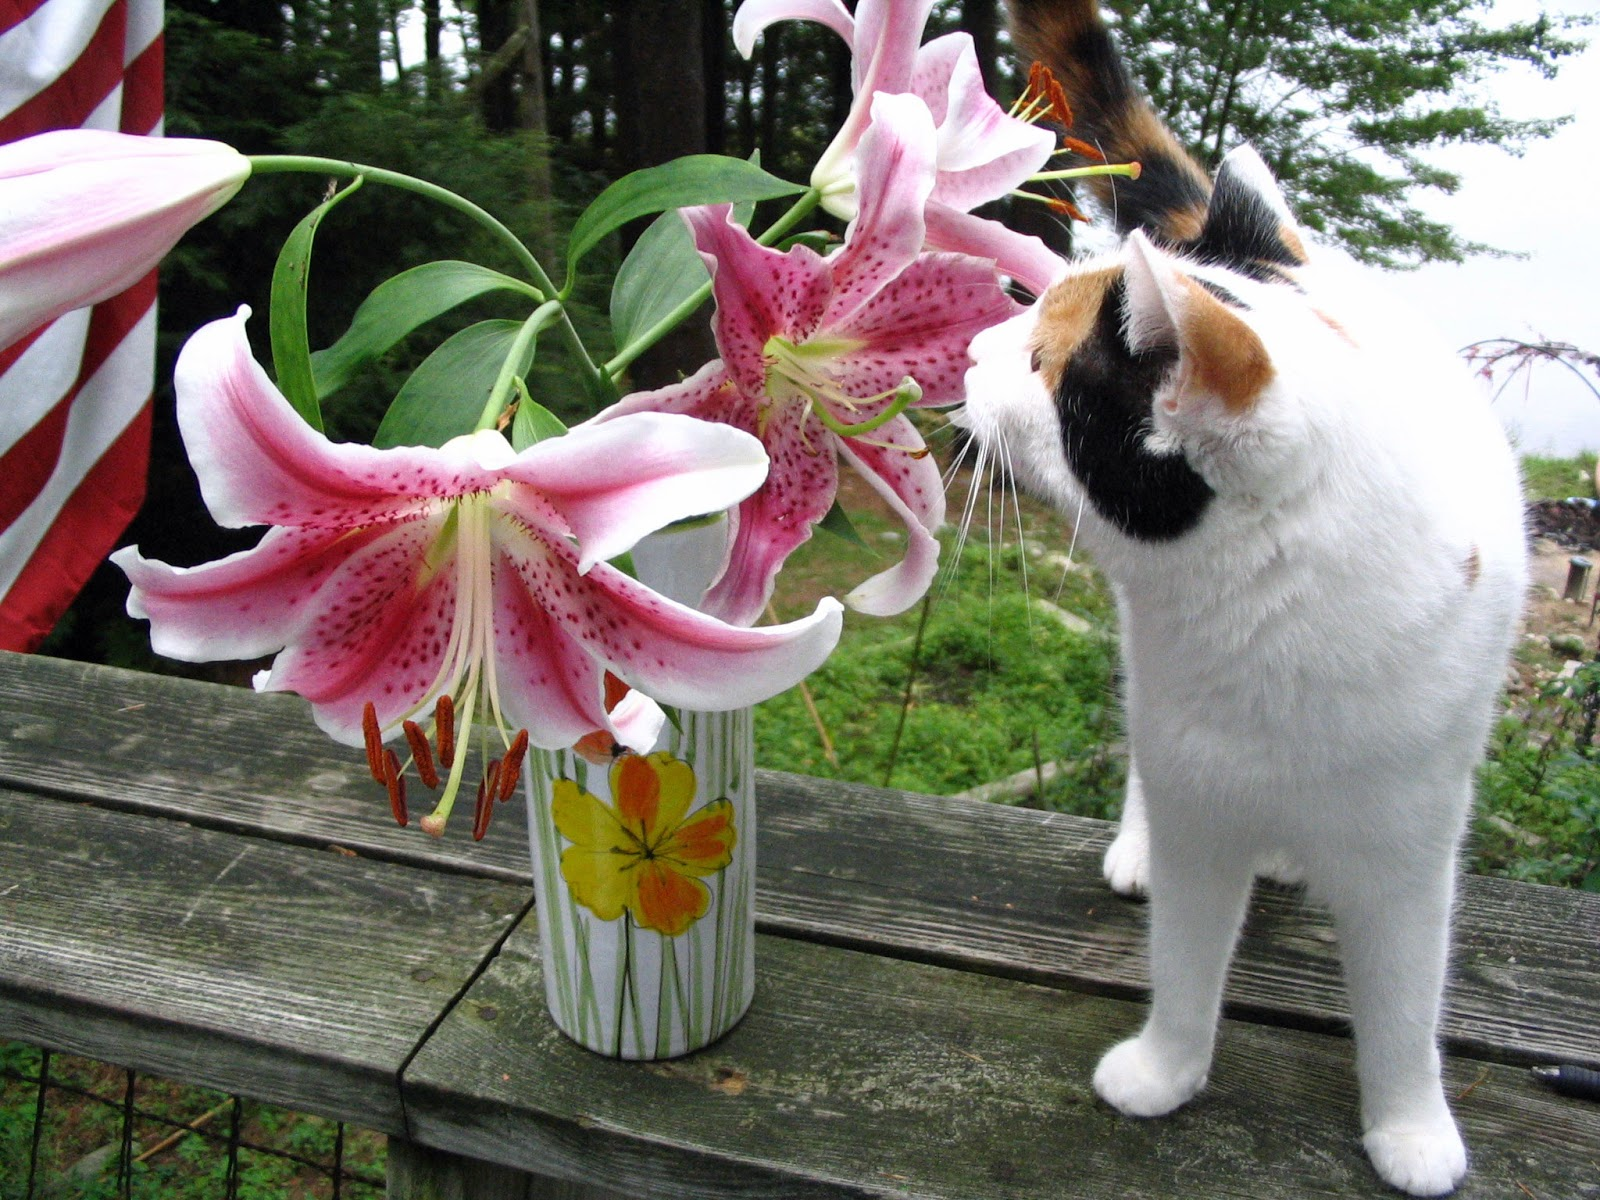 Alley cat rescue inc an alliance for cat protection flower dangers for felines - Toxic plants for dogs and cats the danger behind flowers ...